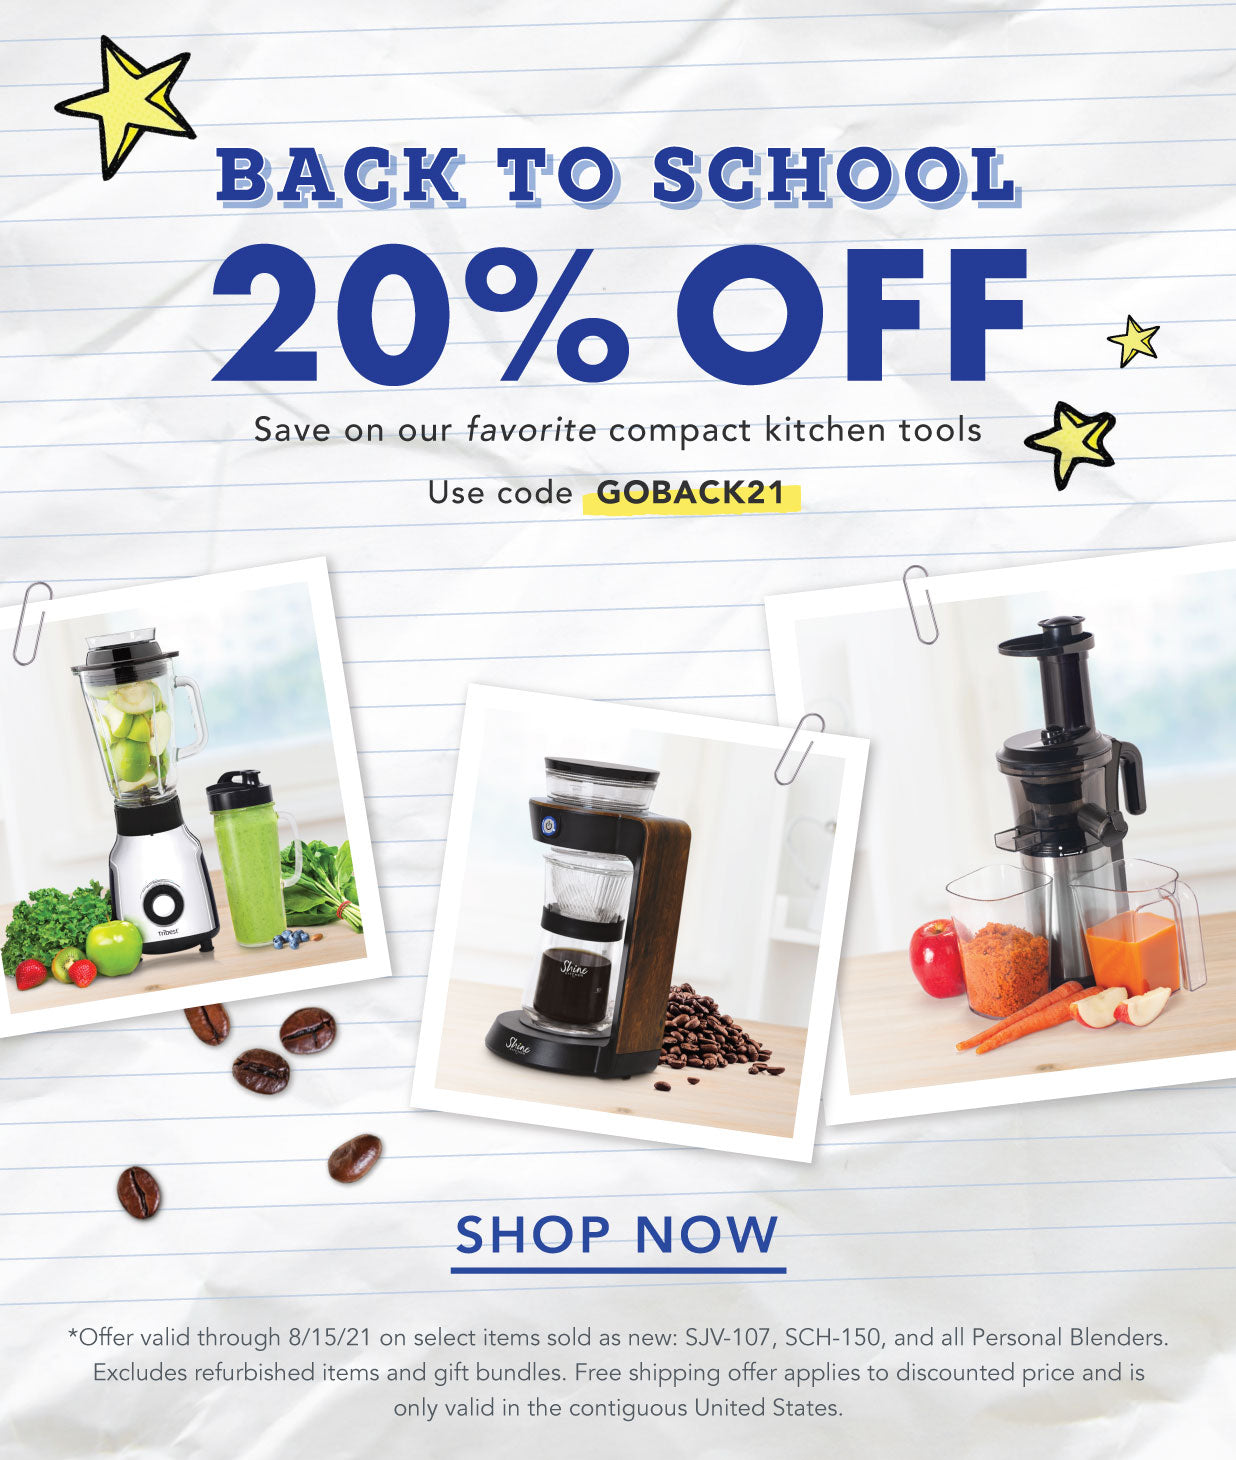 Save 20% on select kitchen essentials with code GOBACK21 thru 8/15/21.